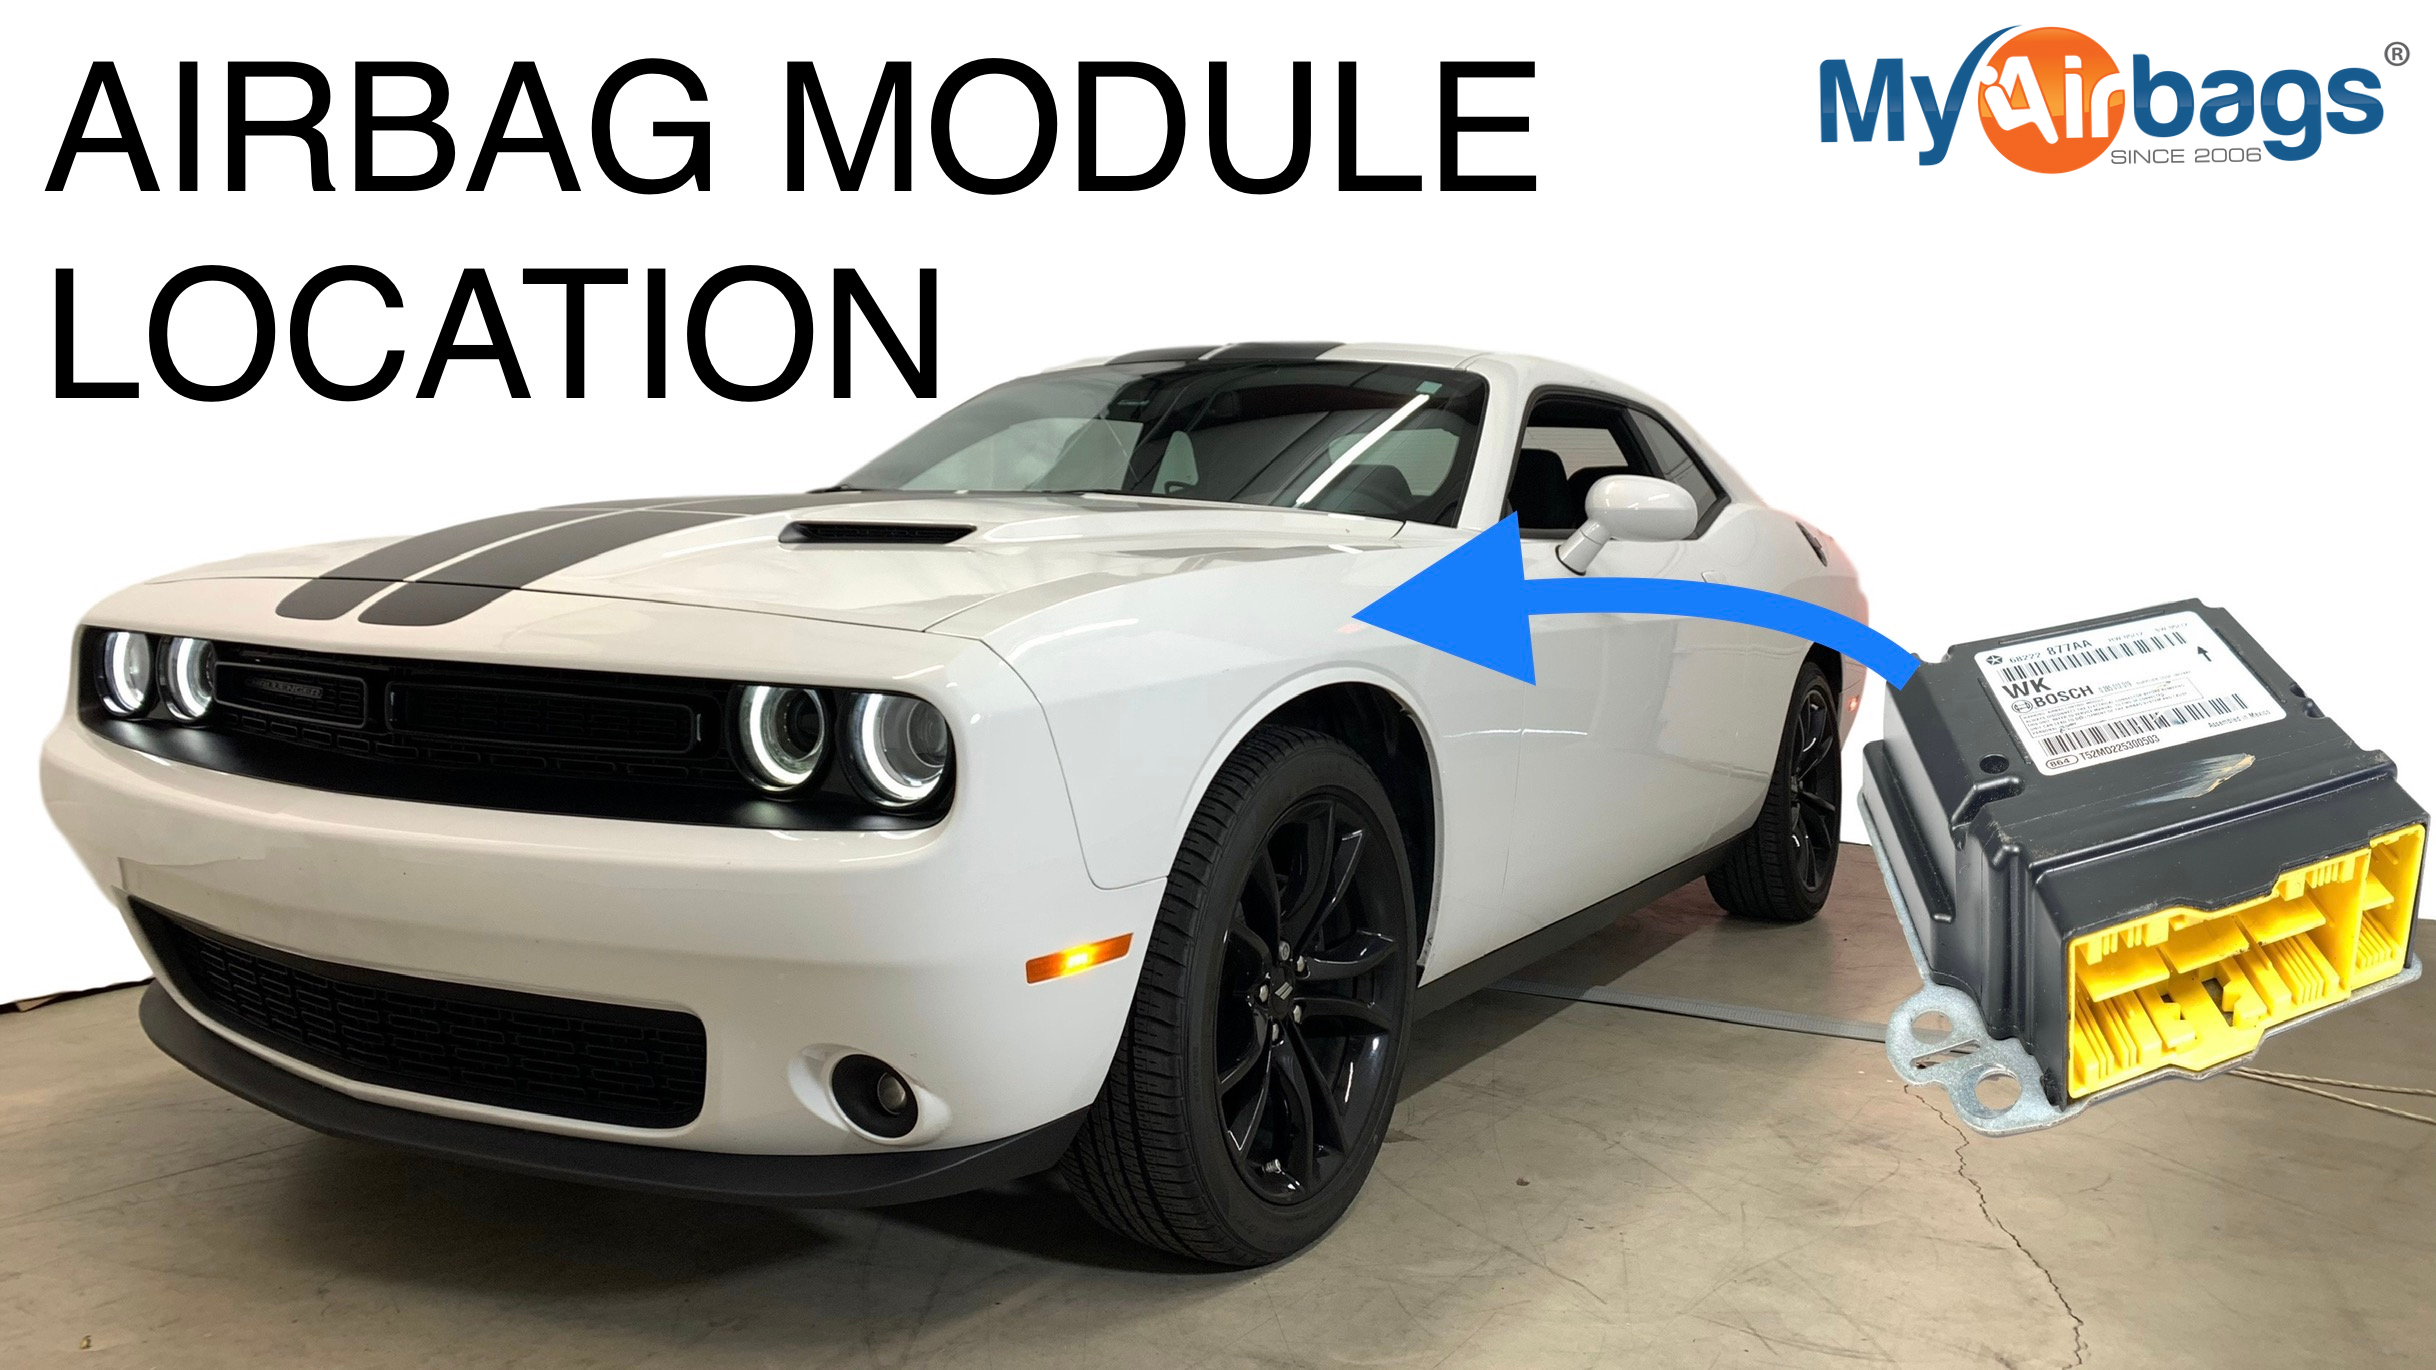 medium resolution of srs airbag control module removal instructions video myairbags jeep liberty airbag control module location free download wiring